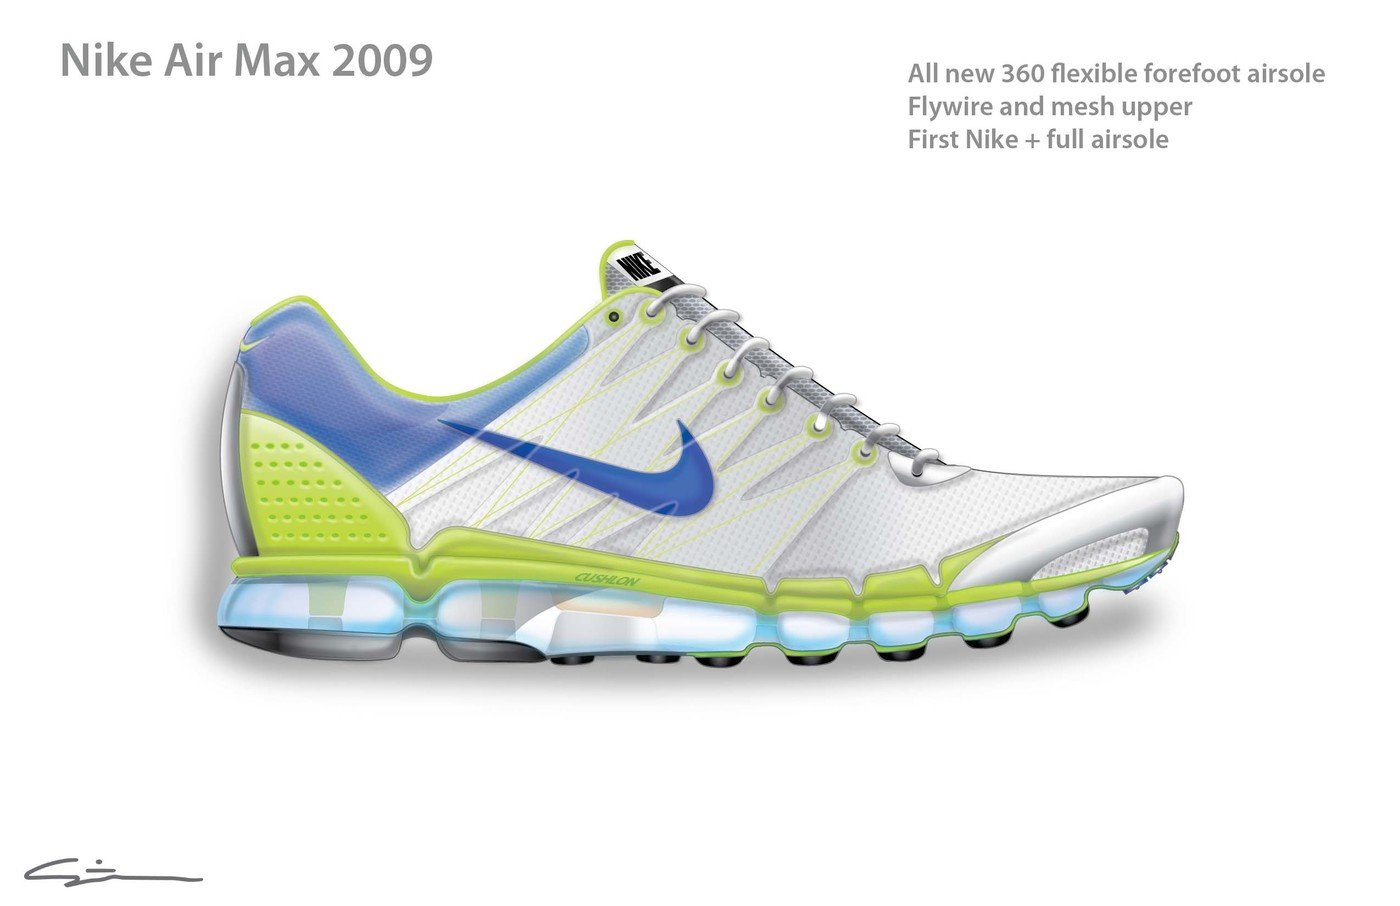 d154b45f90a8 Nike Air Max 2009 Shoe and Airsole by Steven F. Smith at Coroflot.com